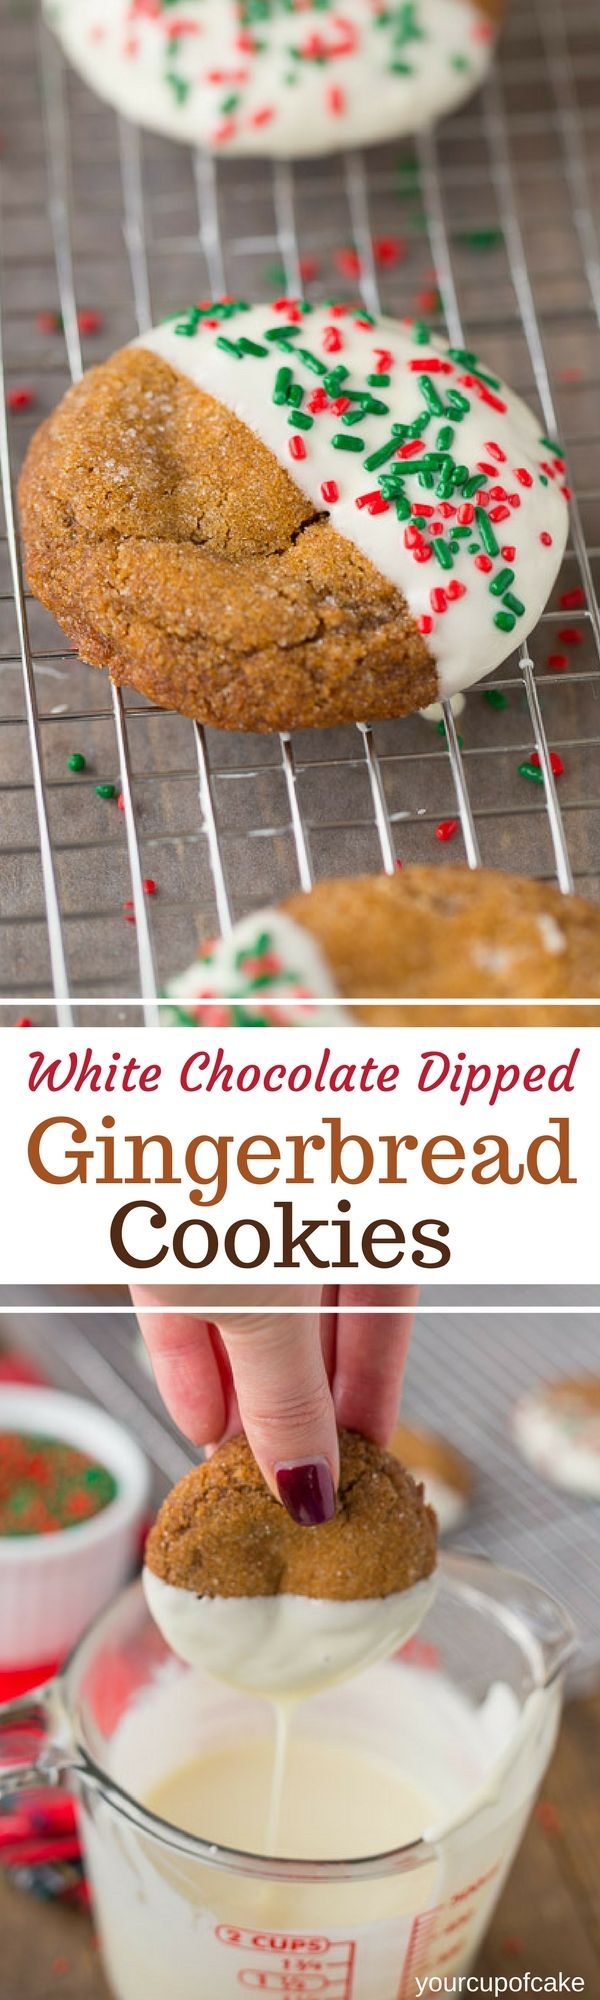 White Chocolate Dipped Gingerbread Cookies For Christmas These Are